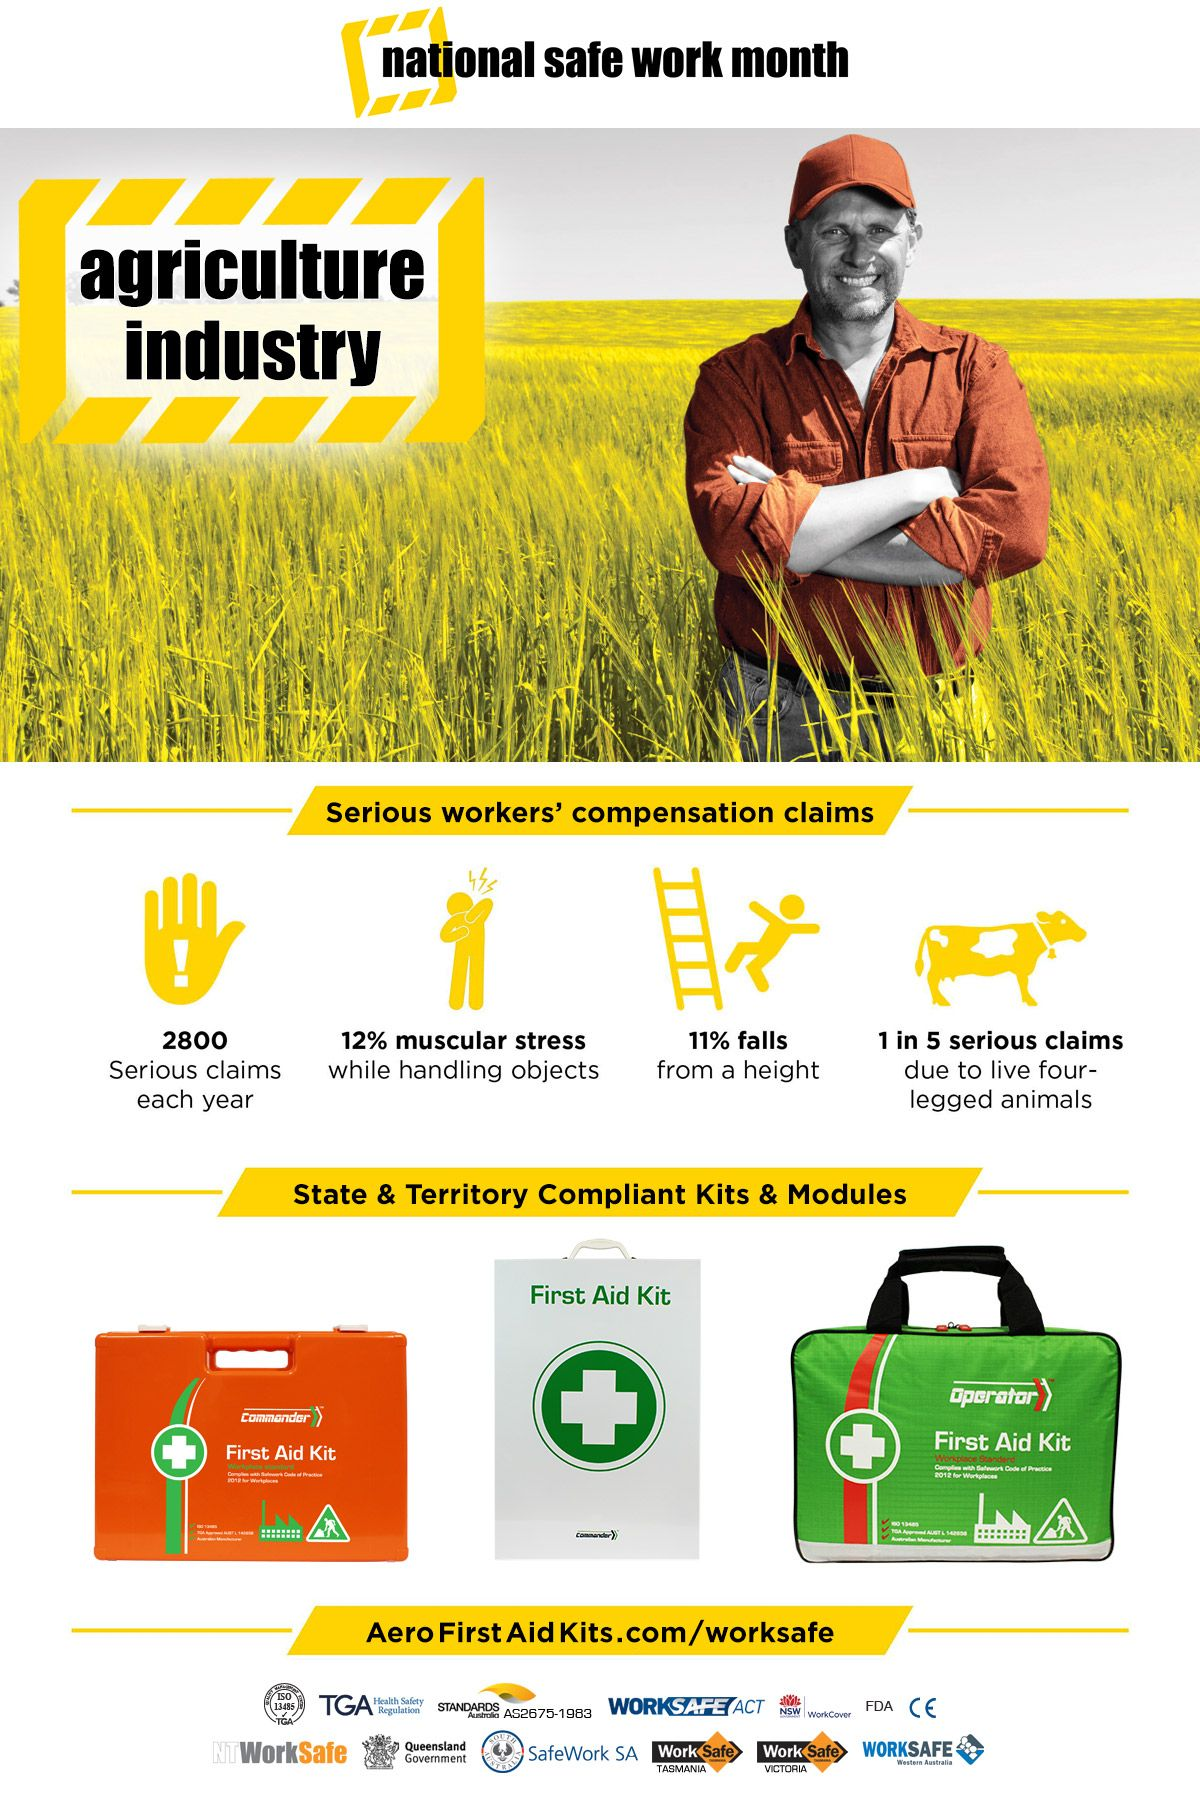 Agriculture Industry First Aid Kits National Safe Work